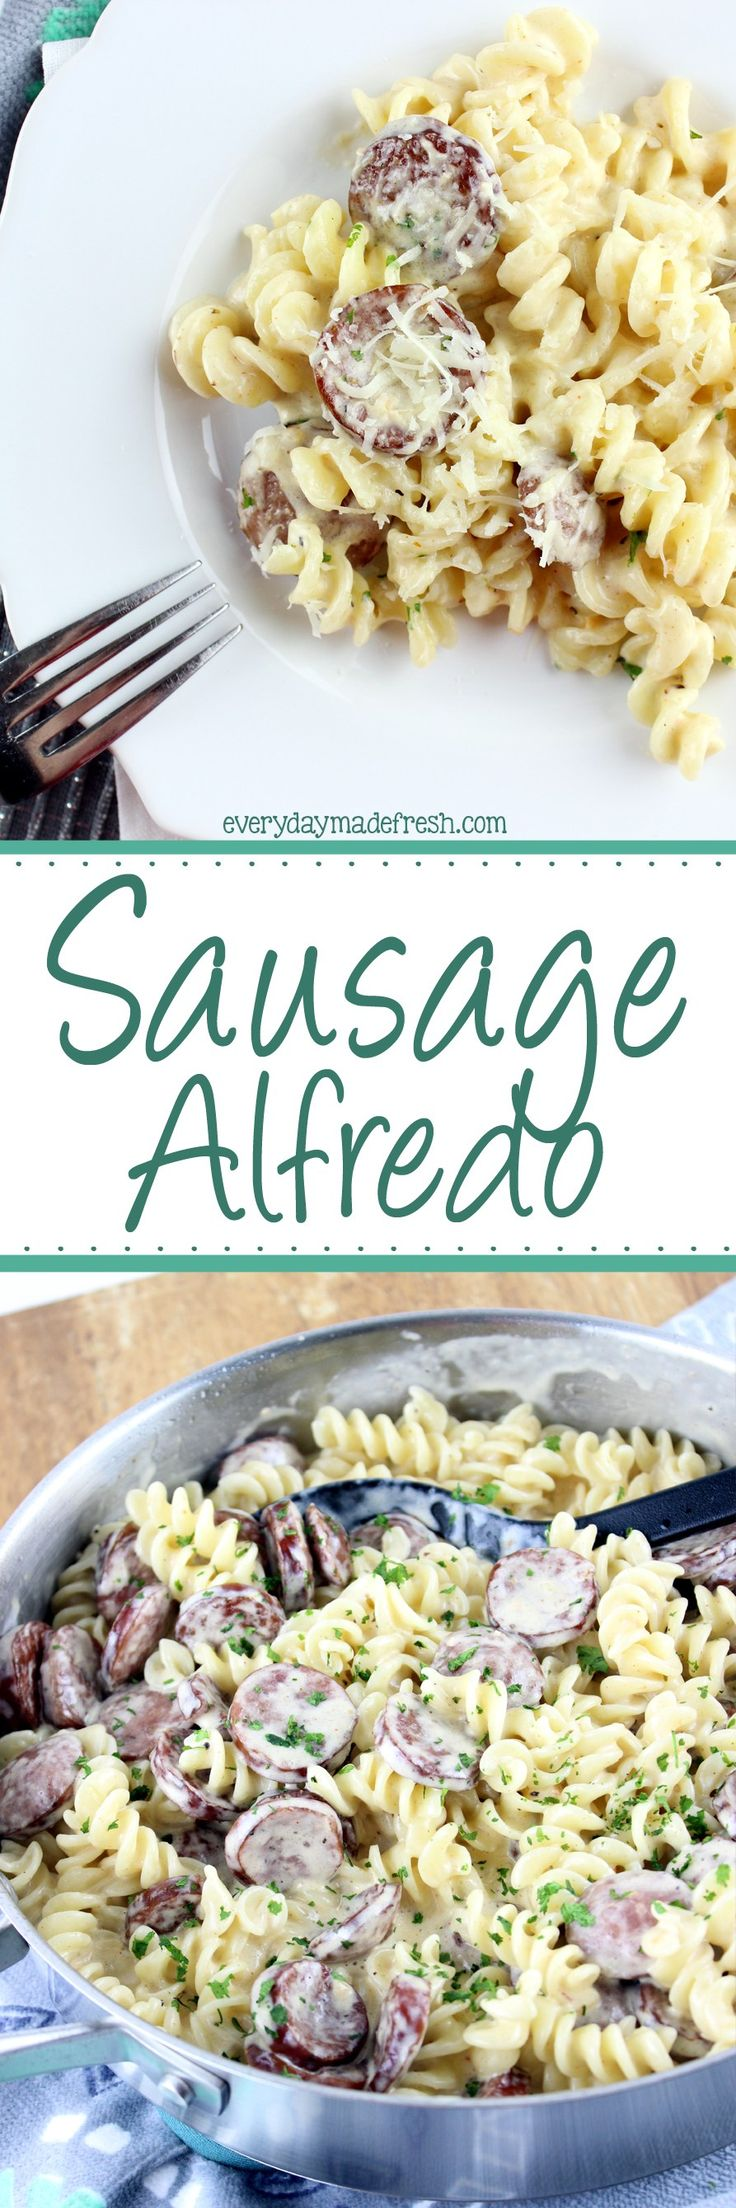 Creamy alfredo sauce, cajun seasoning, and smoked sausage make this Sausage Alfredo a dinner with 5 ingredients, and ready in less than 20 minutes. | EverydayMadeFresh.com